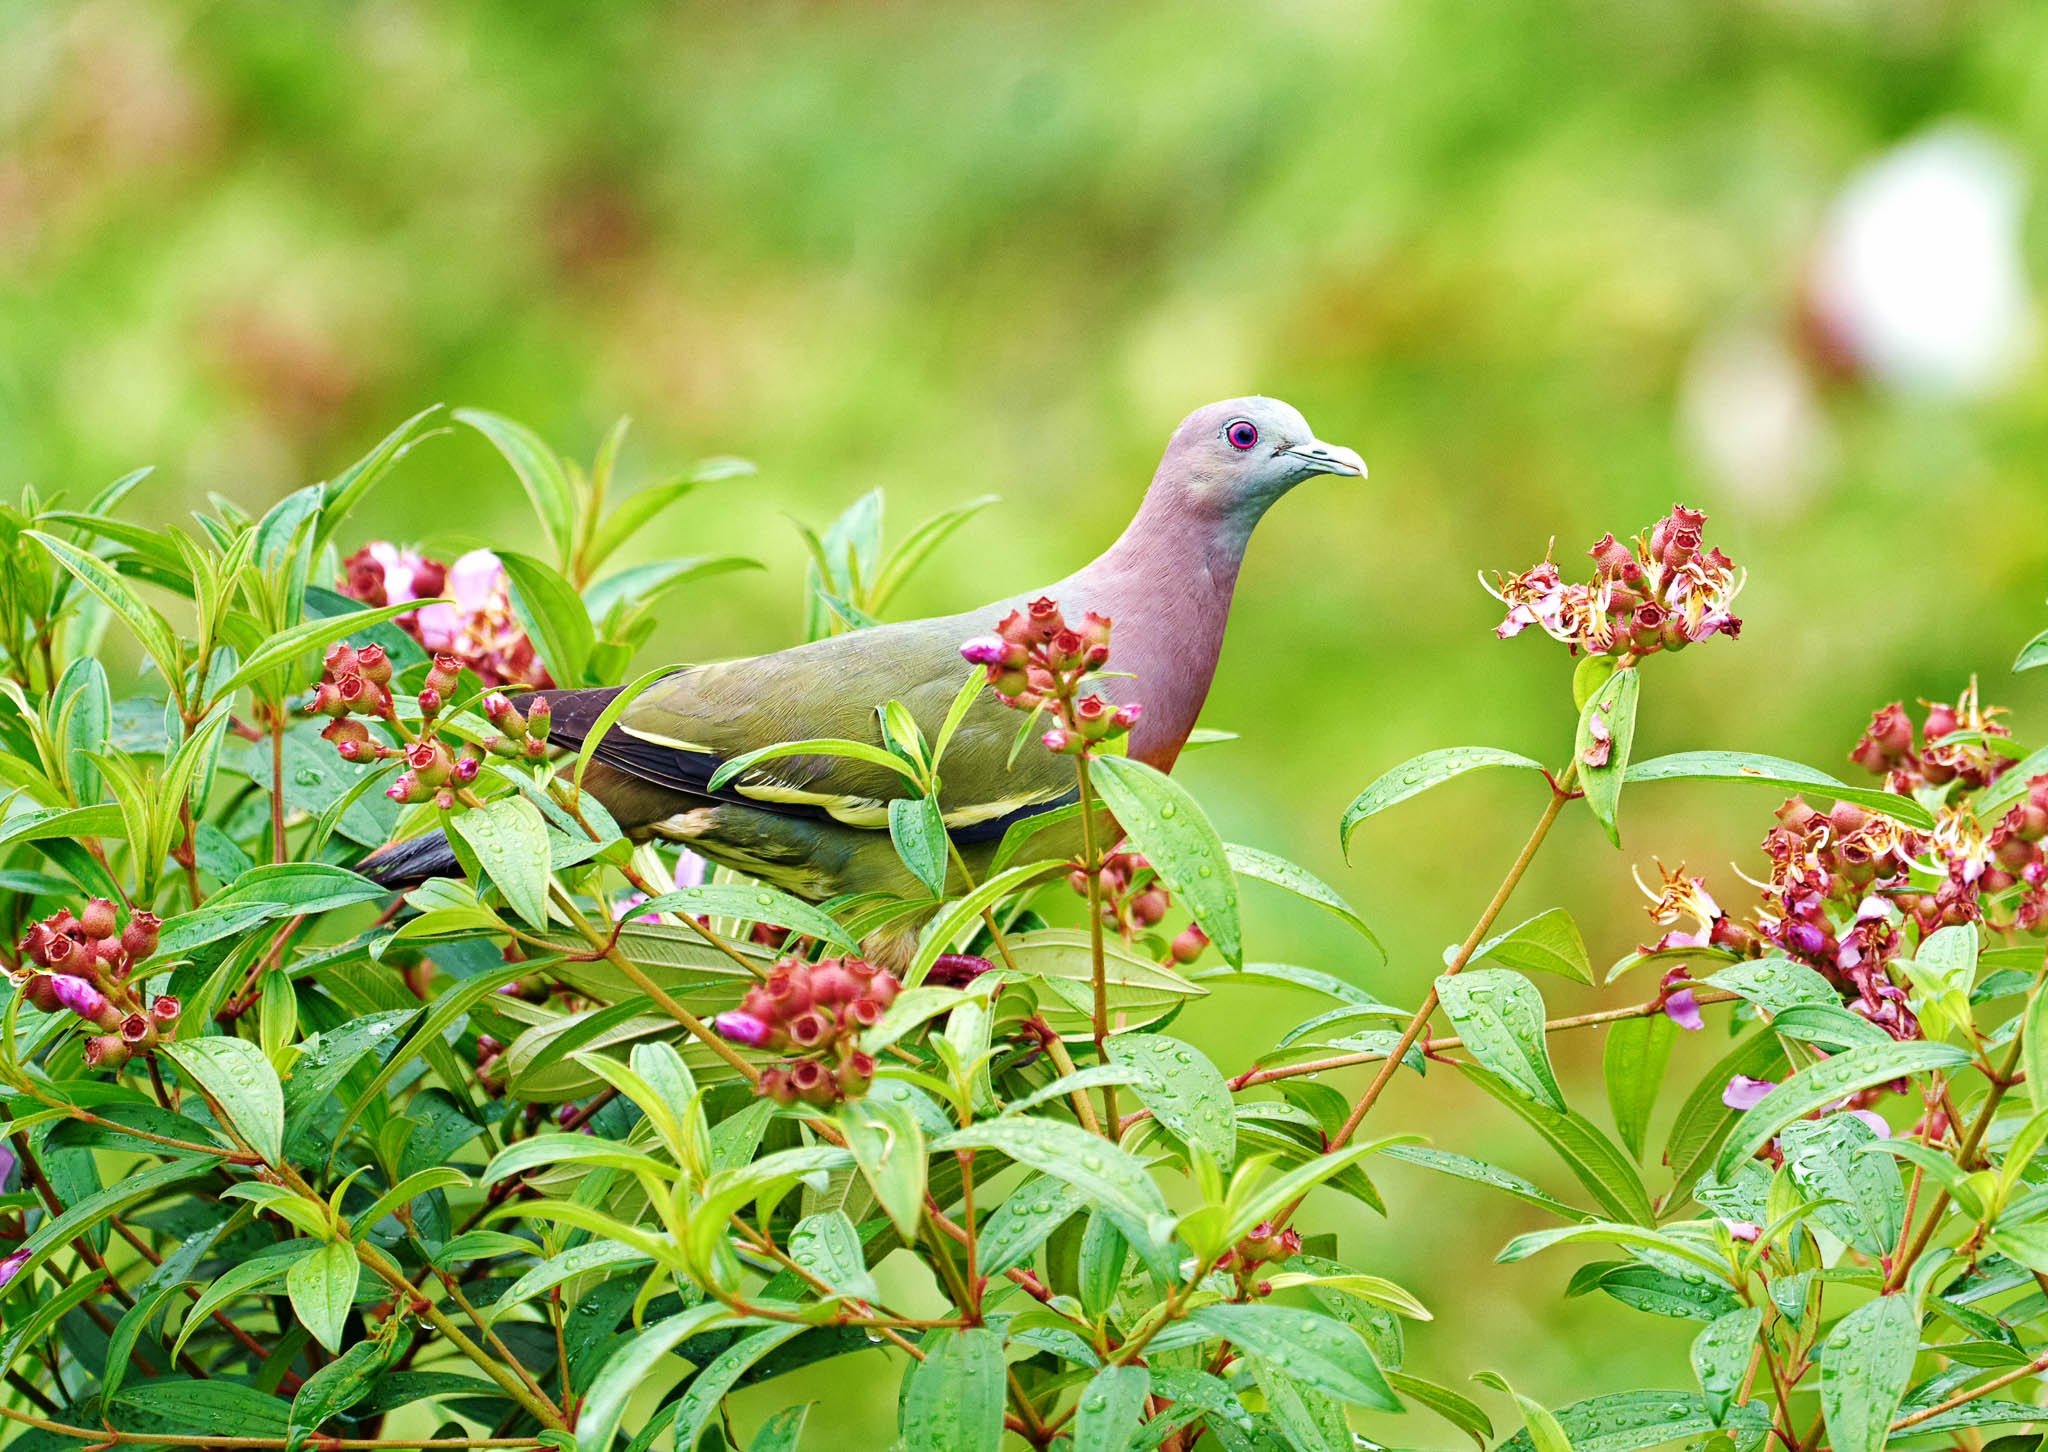 A pink-necked green pigeon at the Mount Faber Park, Singapore